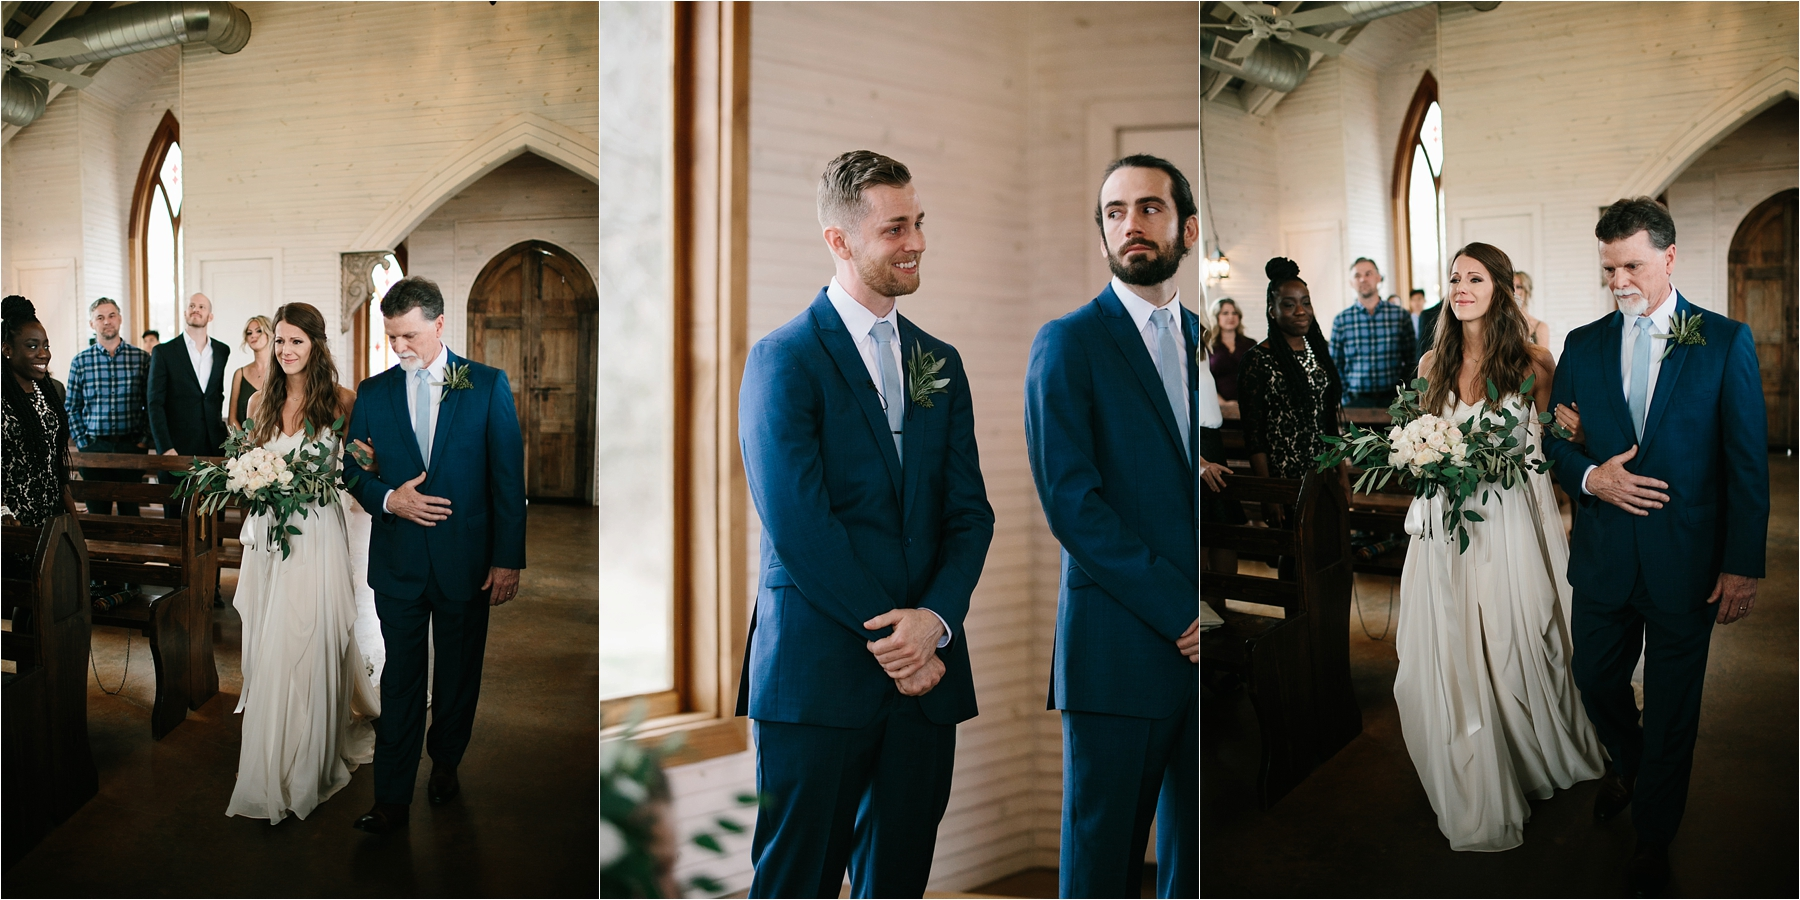 Lauren + Matt __ an intimate, emotional, blush pink, navy blue, and greenery toned wedding accents at the Brooks at Weatherford by North Texas Wedding Photographer Rachel Meagan Photography112